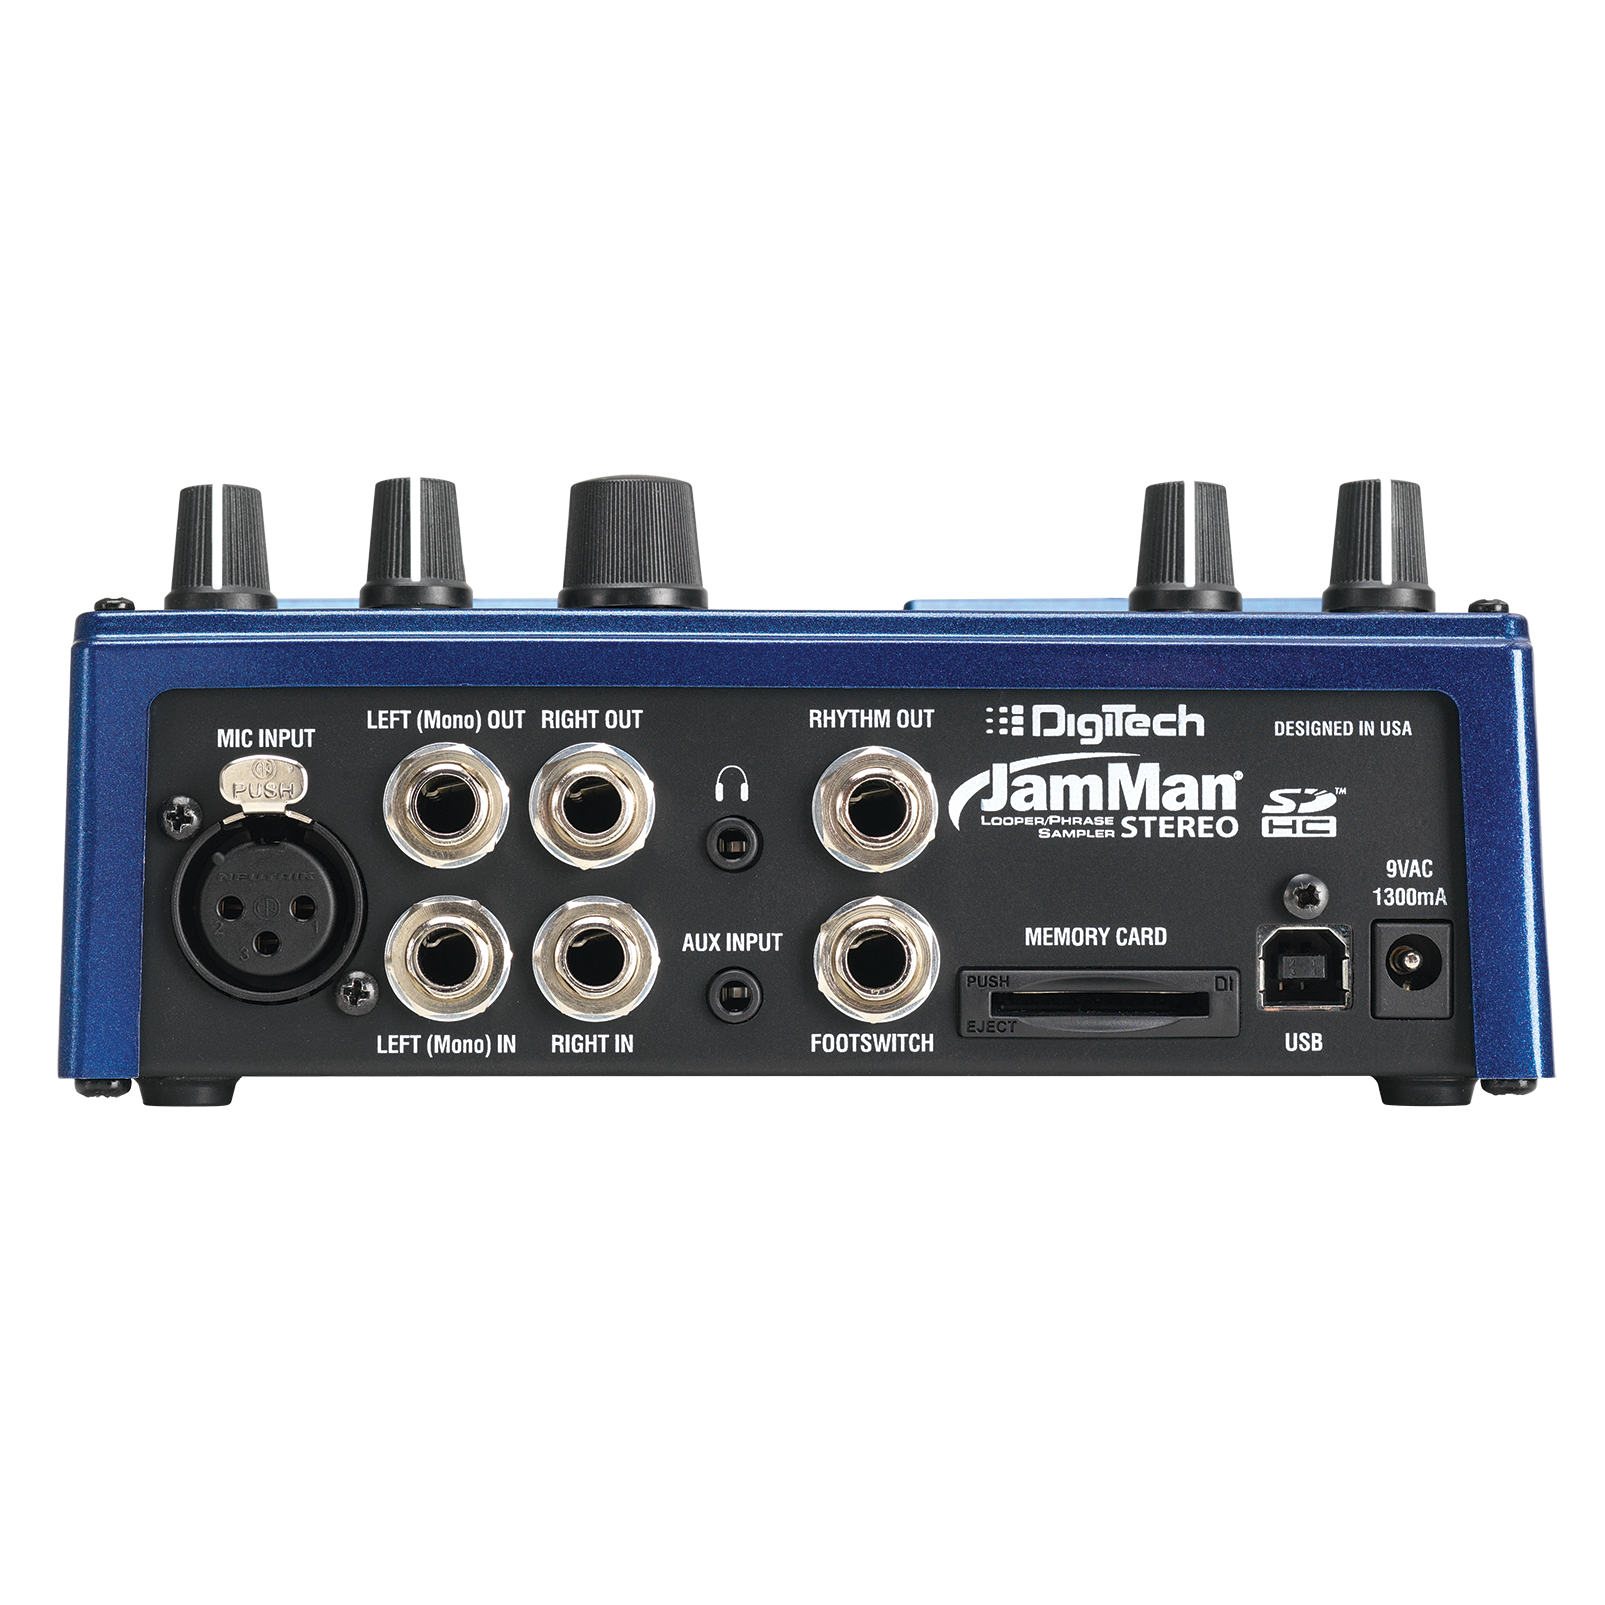 JamMan Stereo - Blue - Stereo Looping Pedal with 35 Minutes of Internal Recording Capacity, SDHC Card Expansion, and Included JamManager Loop Librarian Software - Back